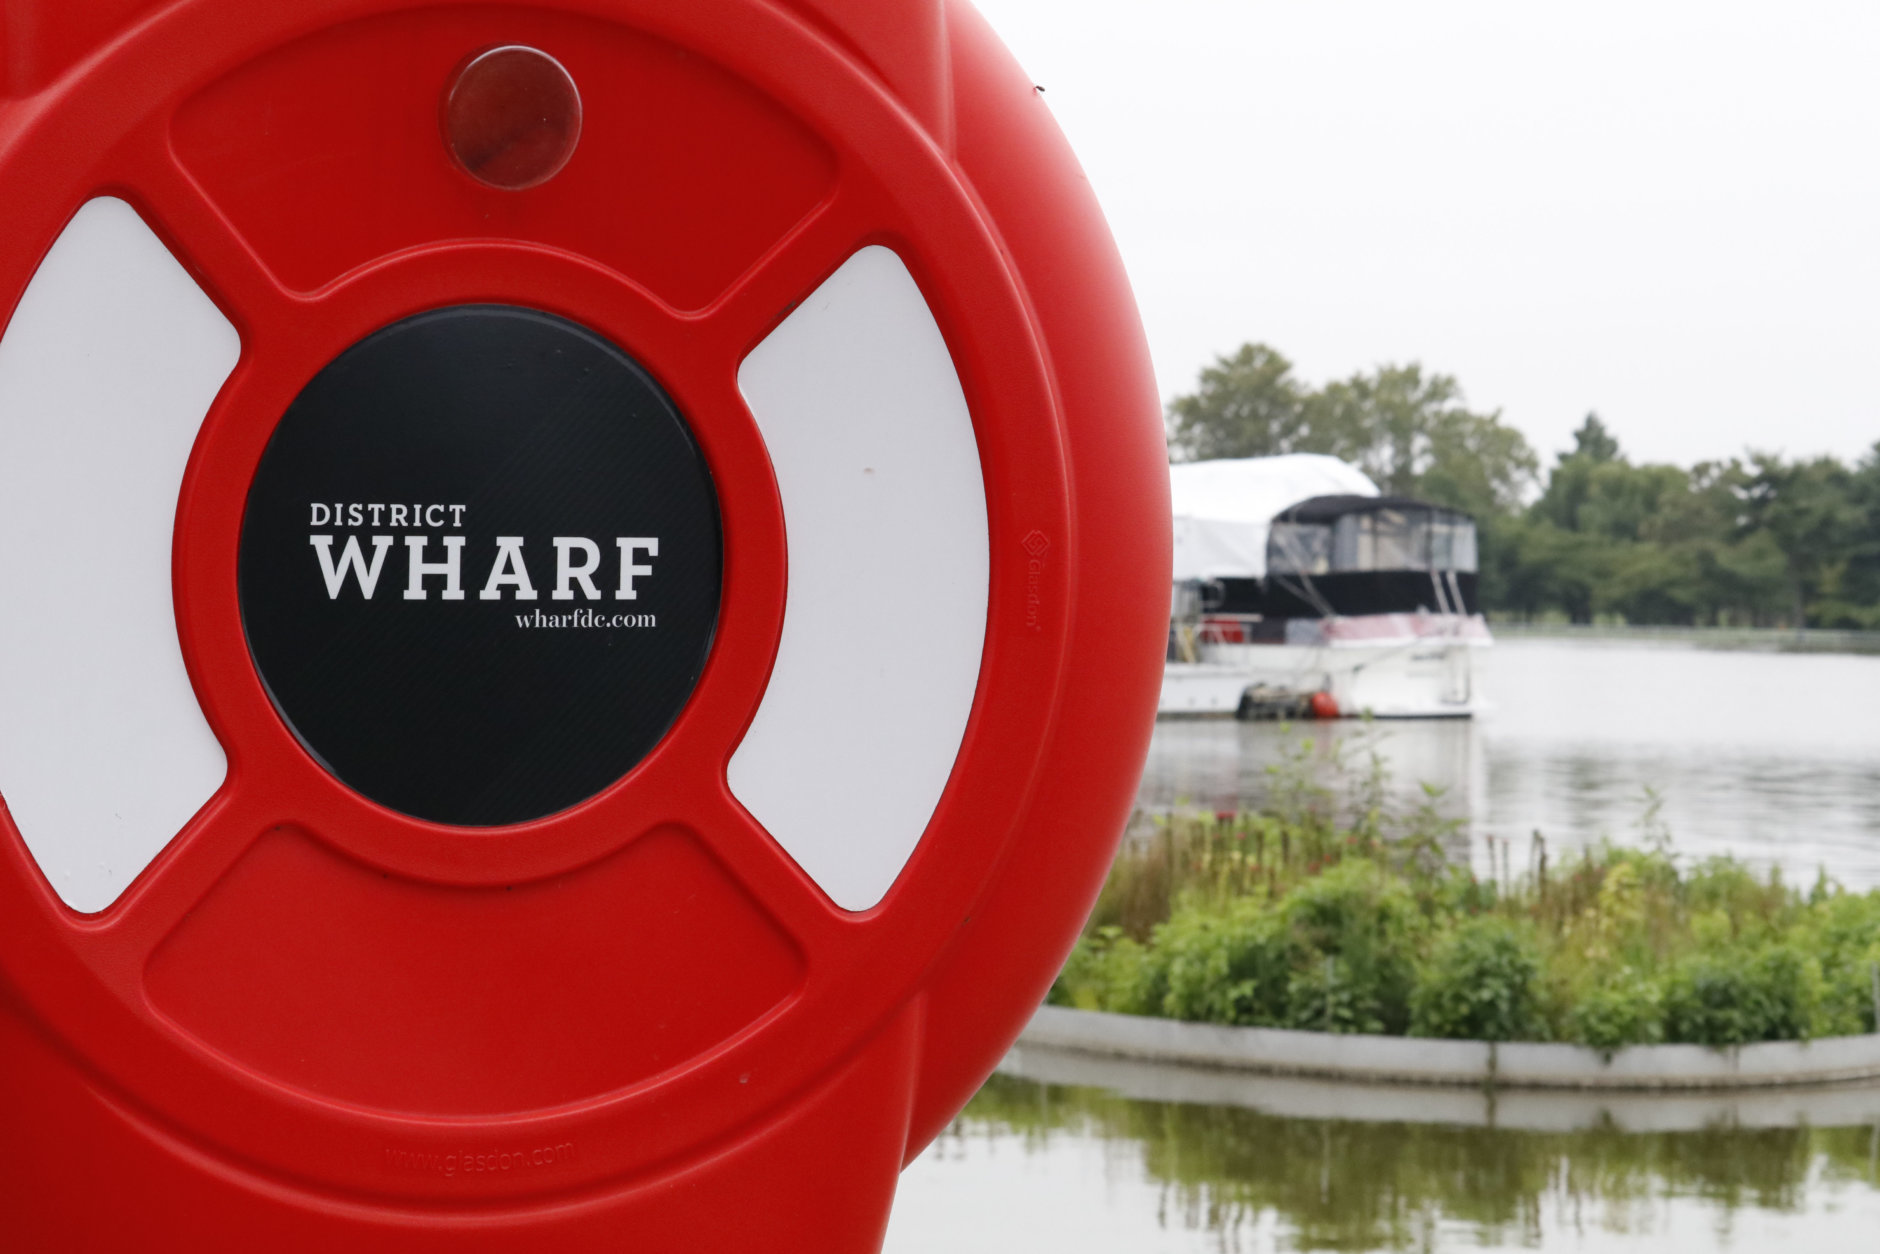 With businesses at the D.C.'s Wharf ready to mark a first year anniversary, owners and managers are getting ready for Hurricane Florence and the possible damage from flooding. (WTOP/Kate Ryan)